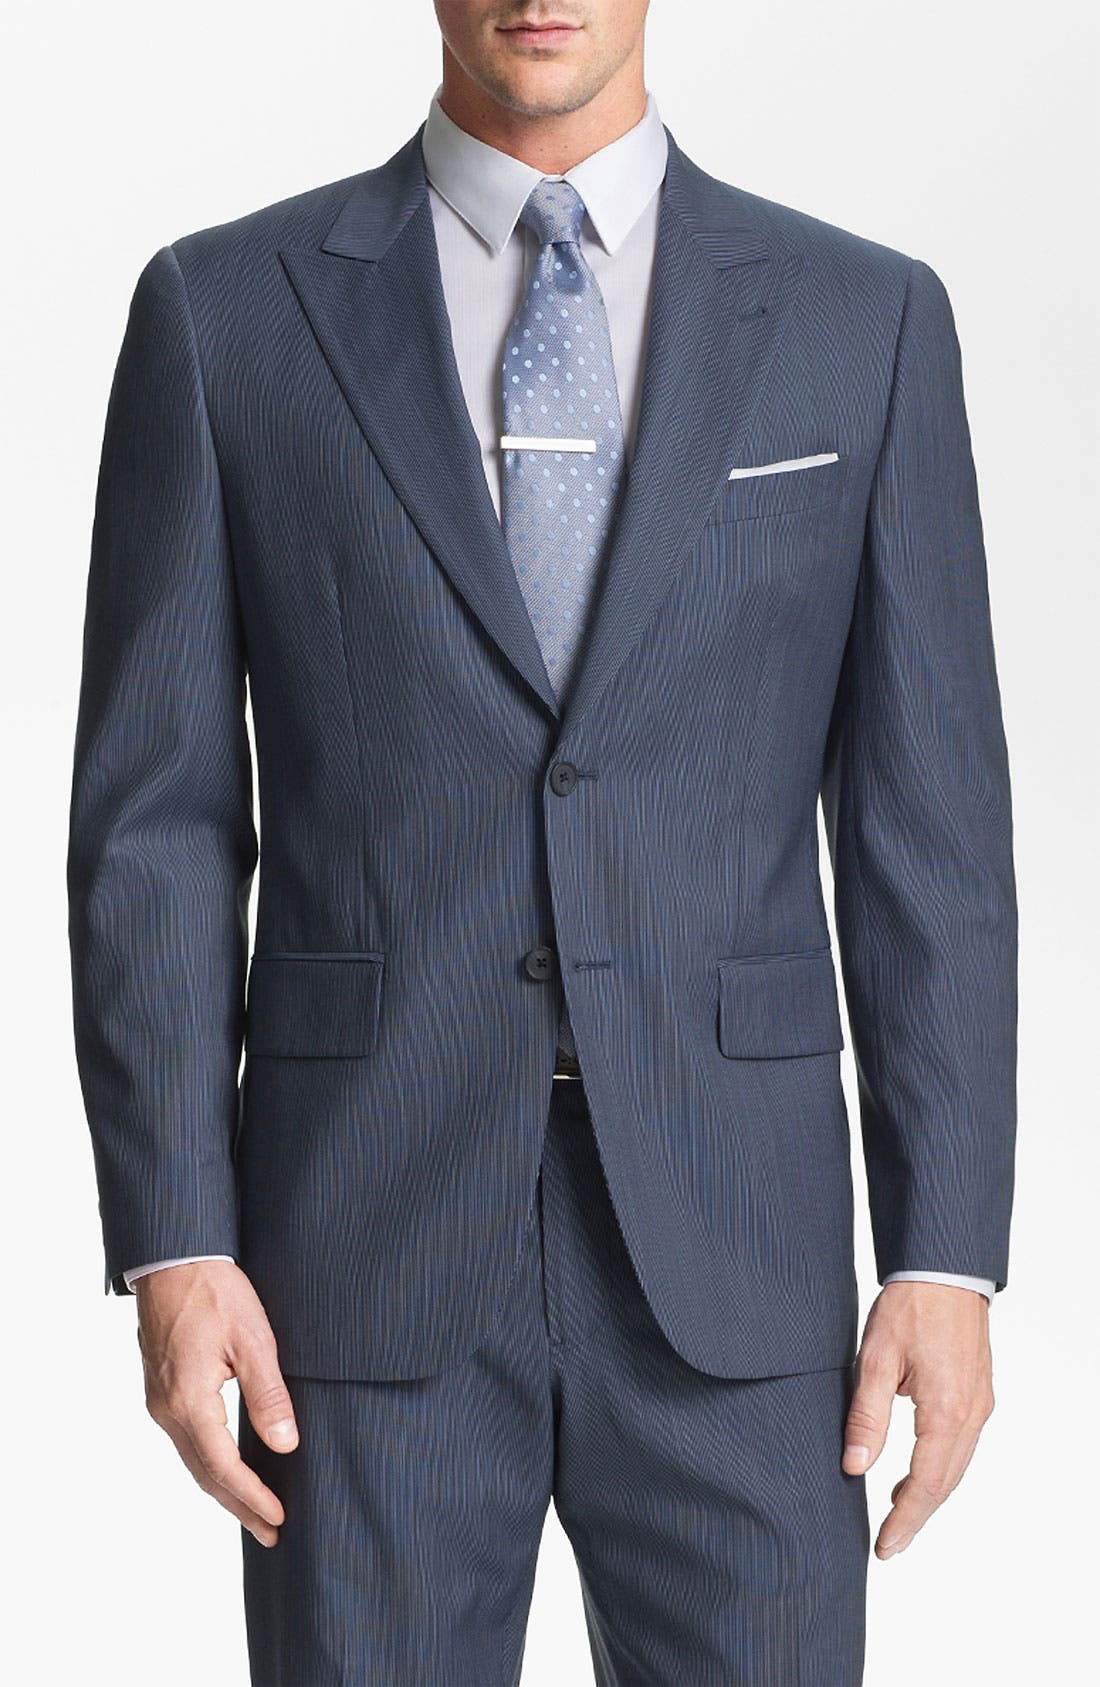 Alternate Image 1 Selected - Joseph Abboud 'Profile' Trim Fit Stripe Wool Suit